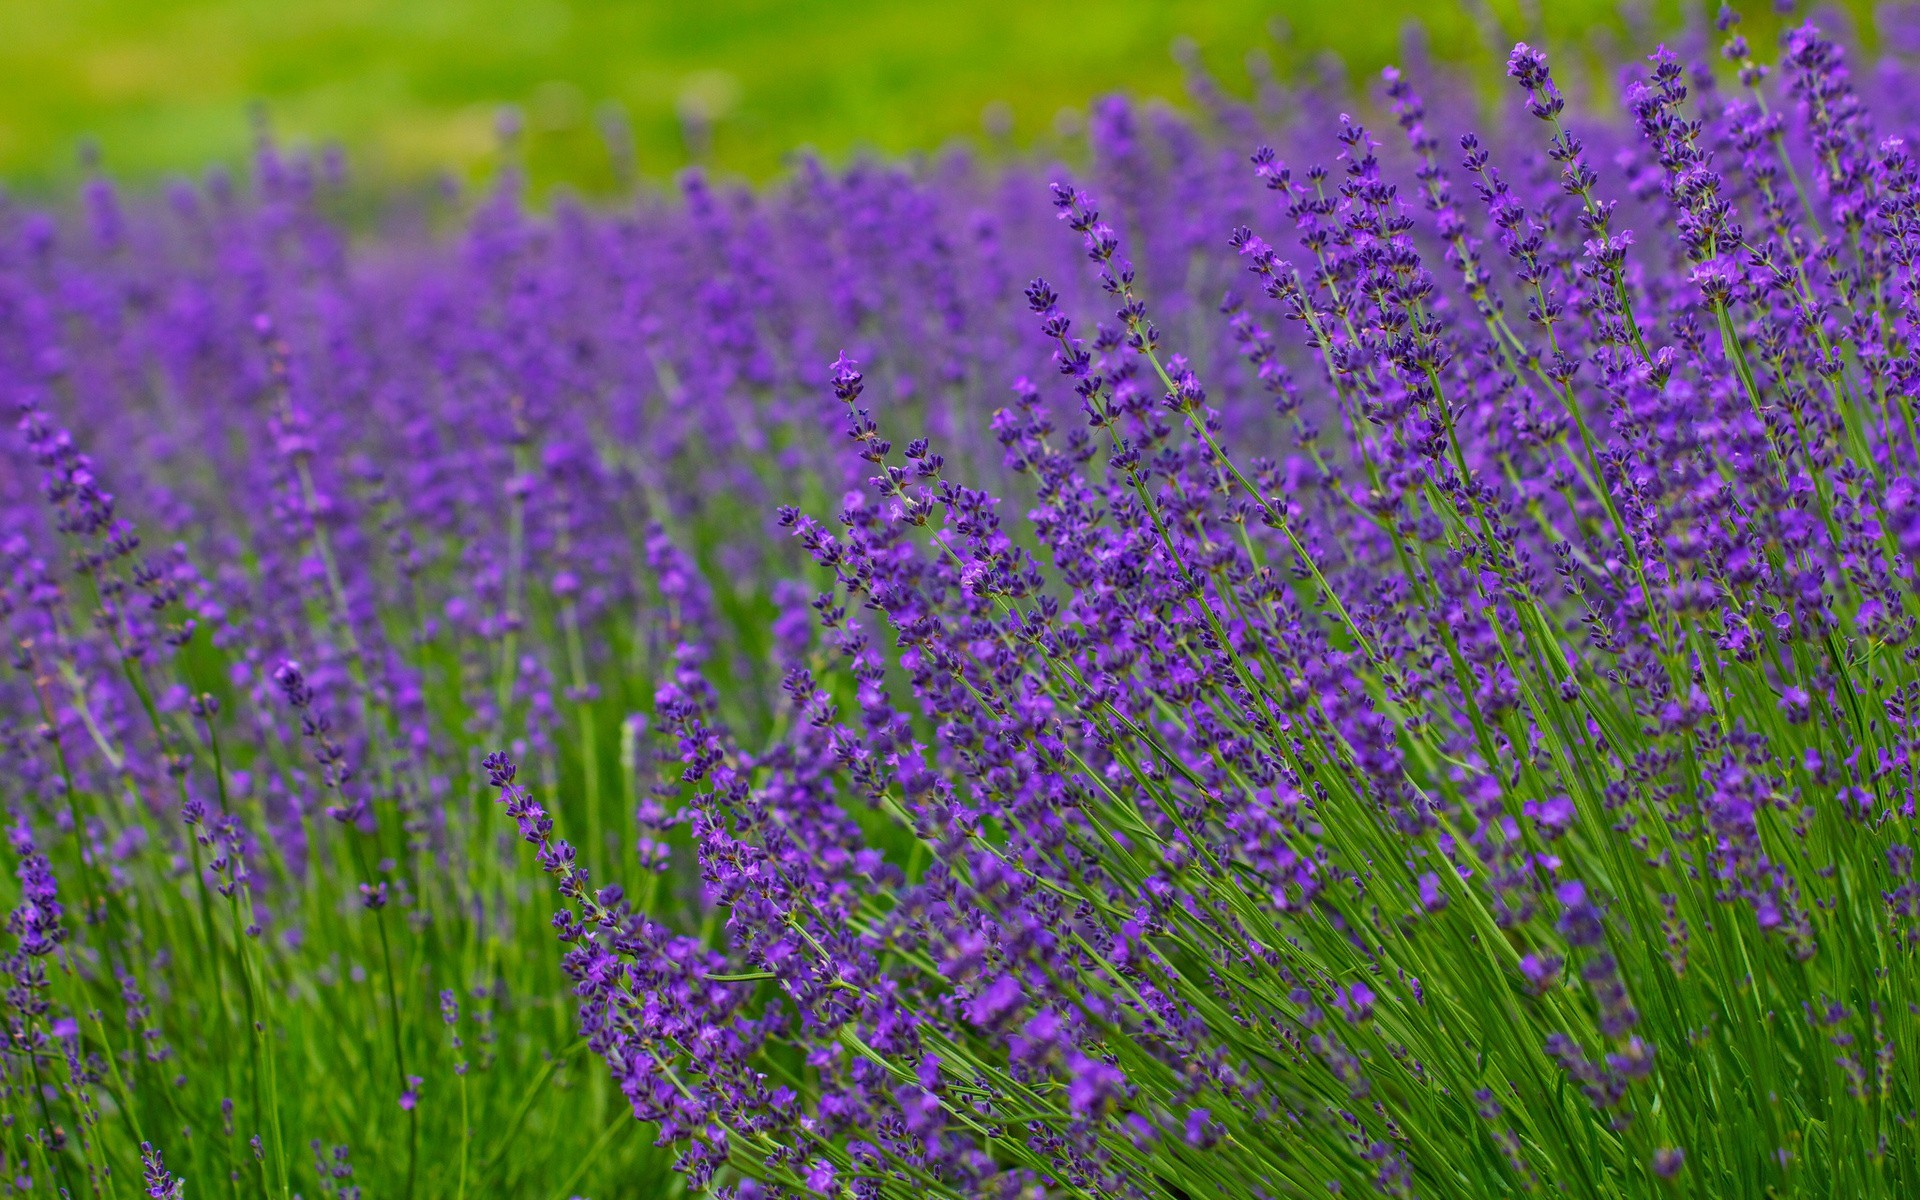 1920x1200 Lavender field hd wallpaper background HD Wallpapers